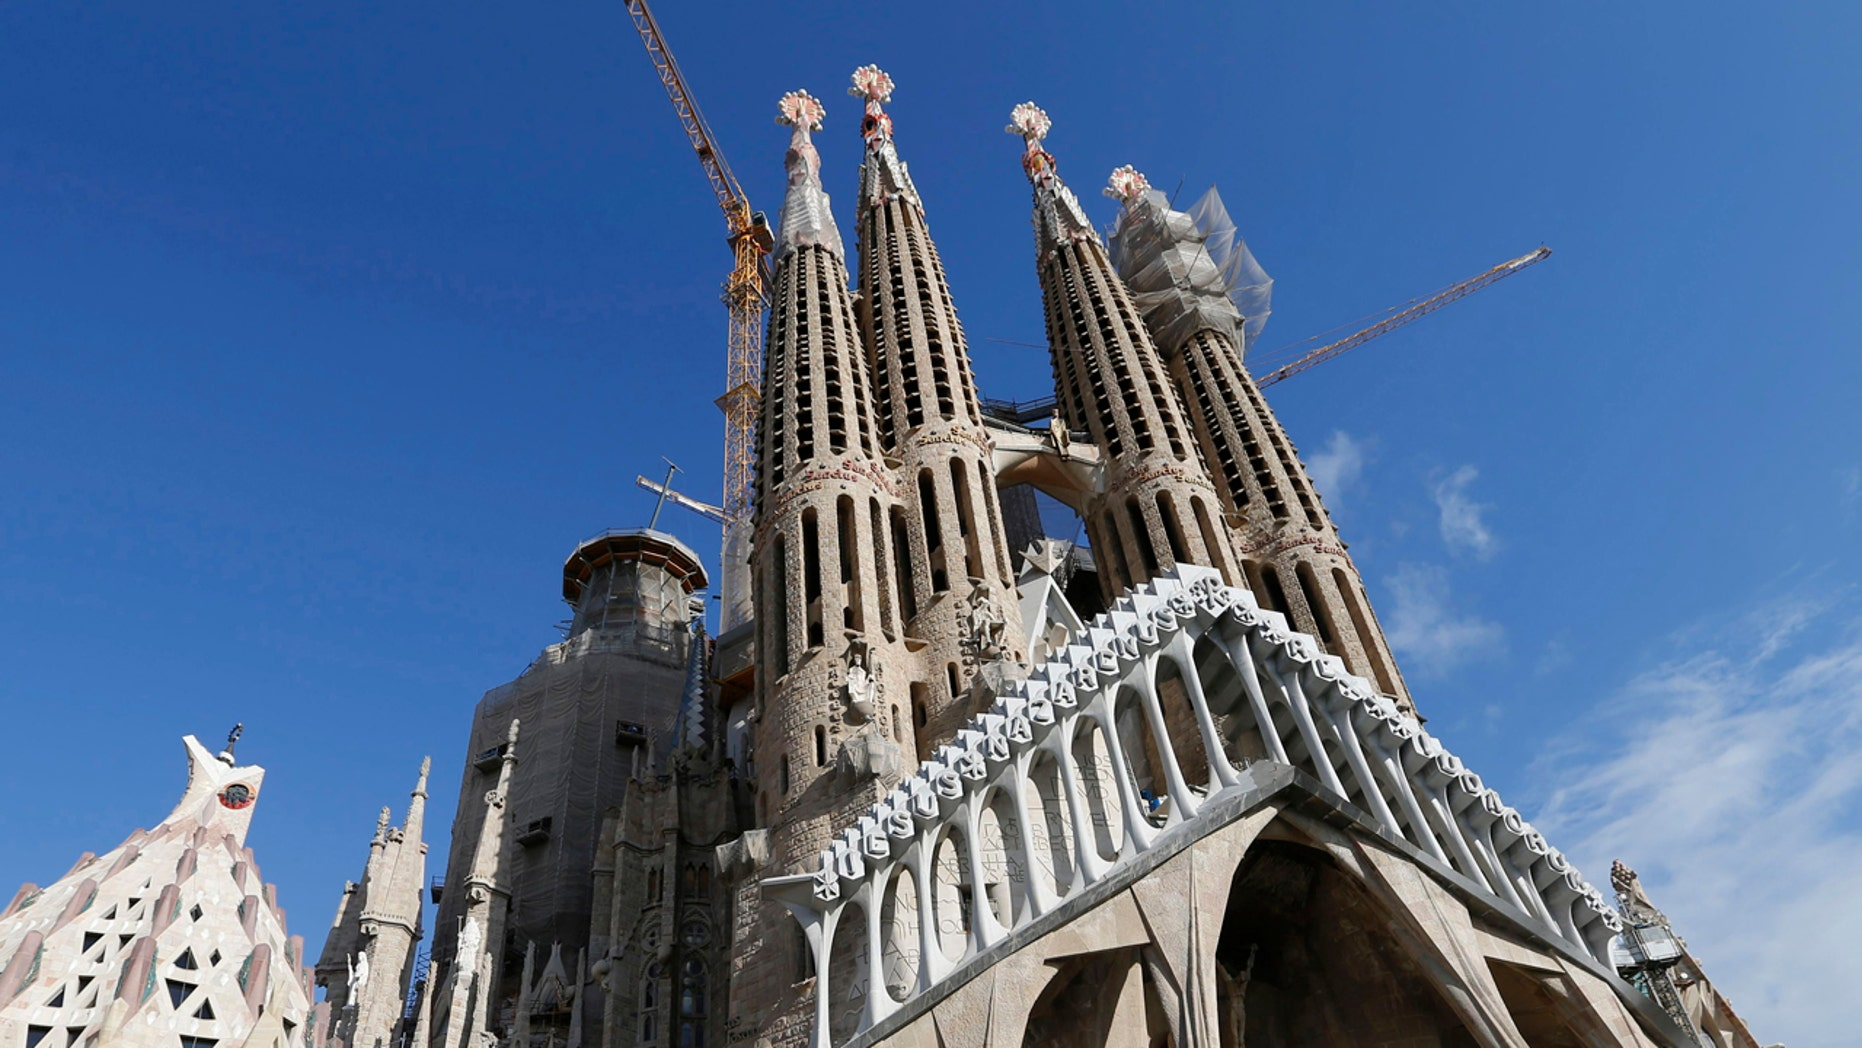 One of Barcelona's most famous sites, the Basilica Sagrada Familia, which was designed by Antoni Gaudi is undergoing major renovations.